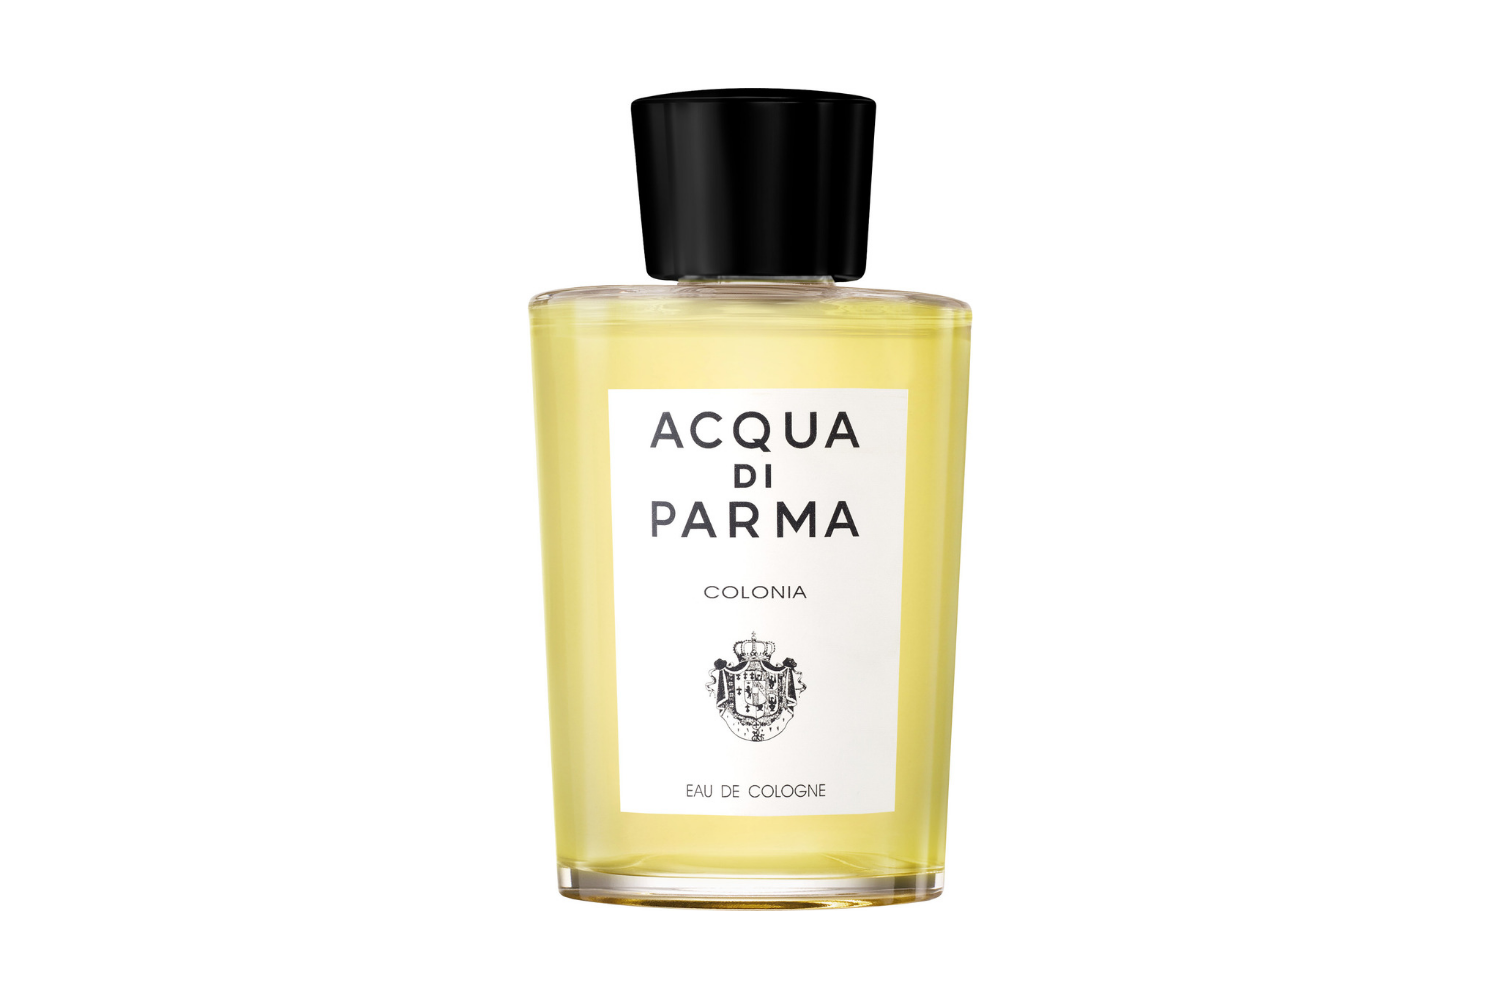 Acqua Di Parma Colonia Review